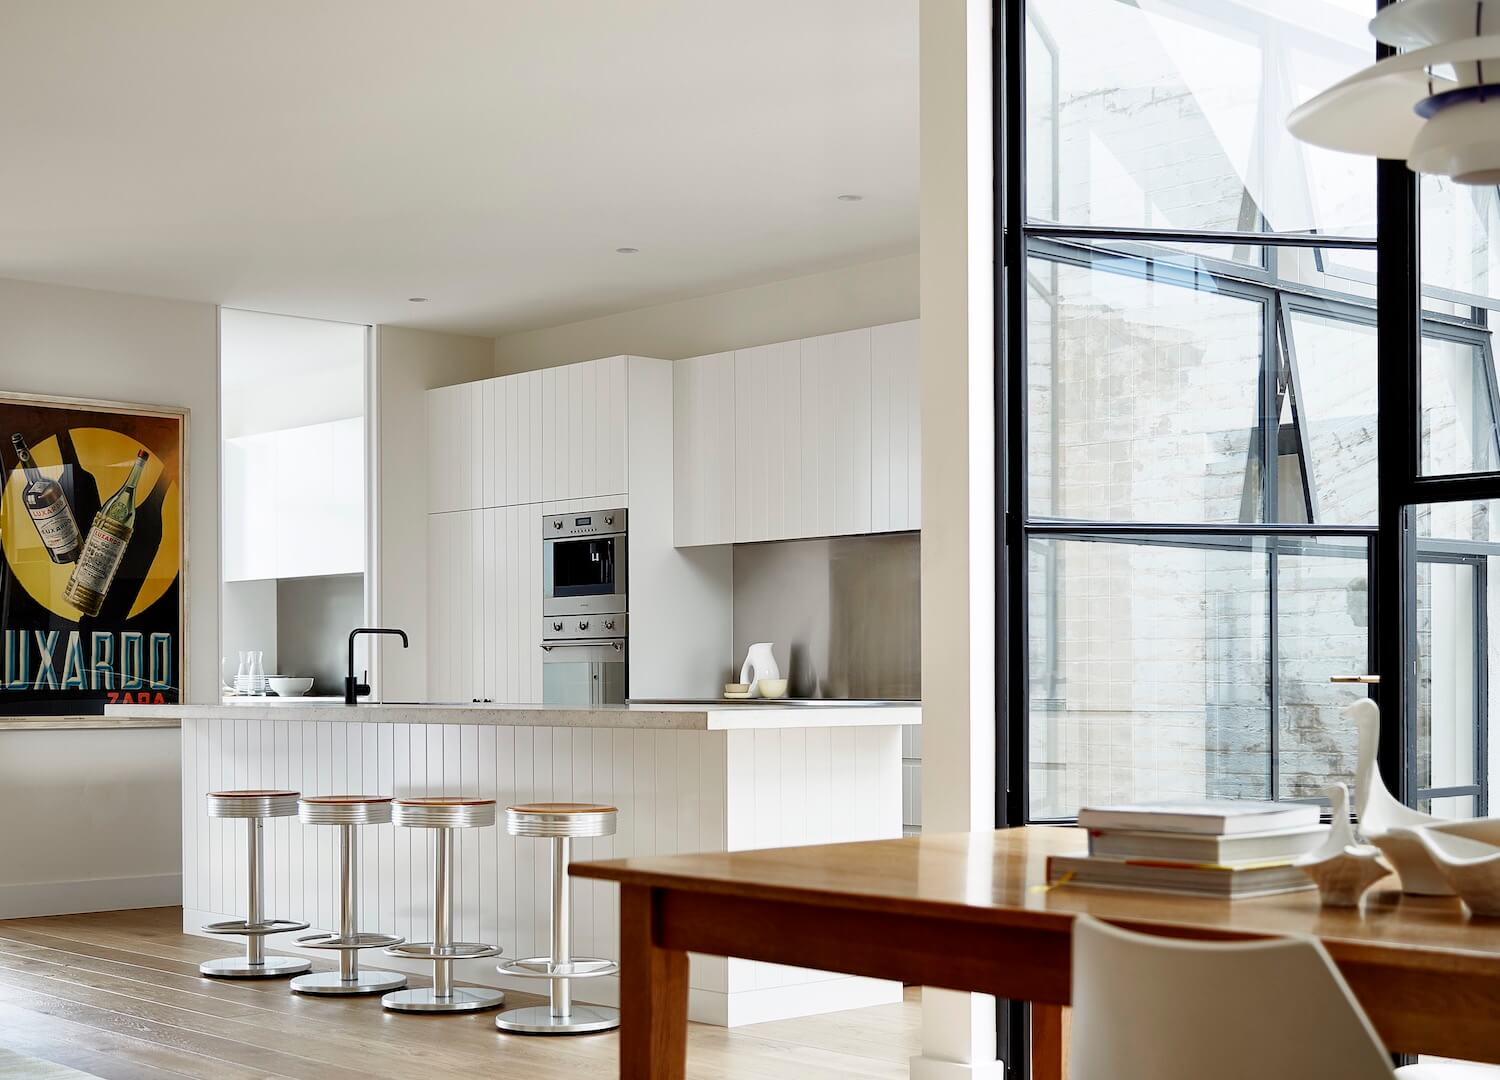 est living ana carin design bondi road kitchen